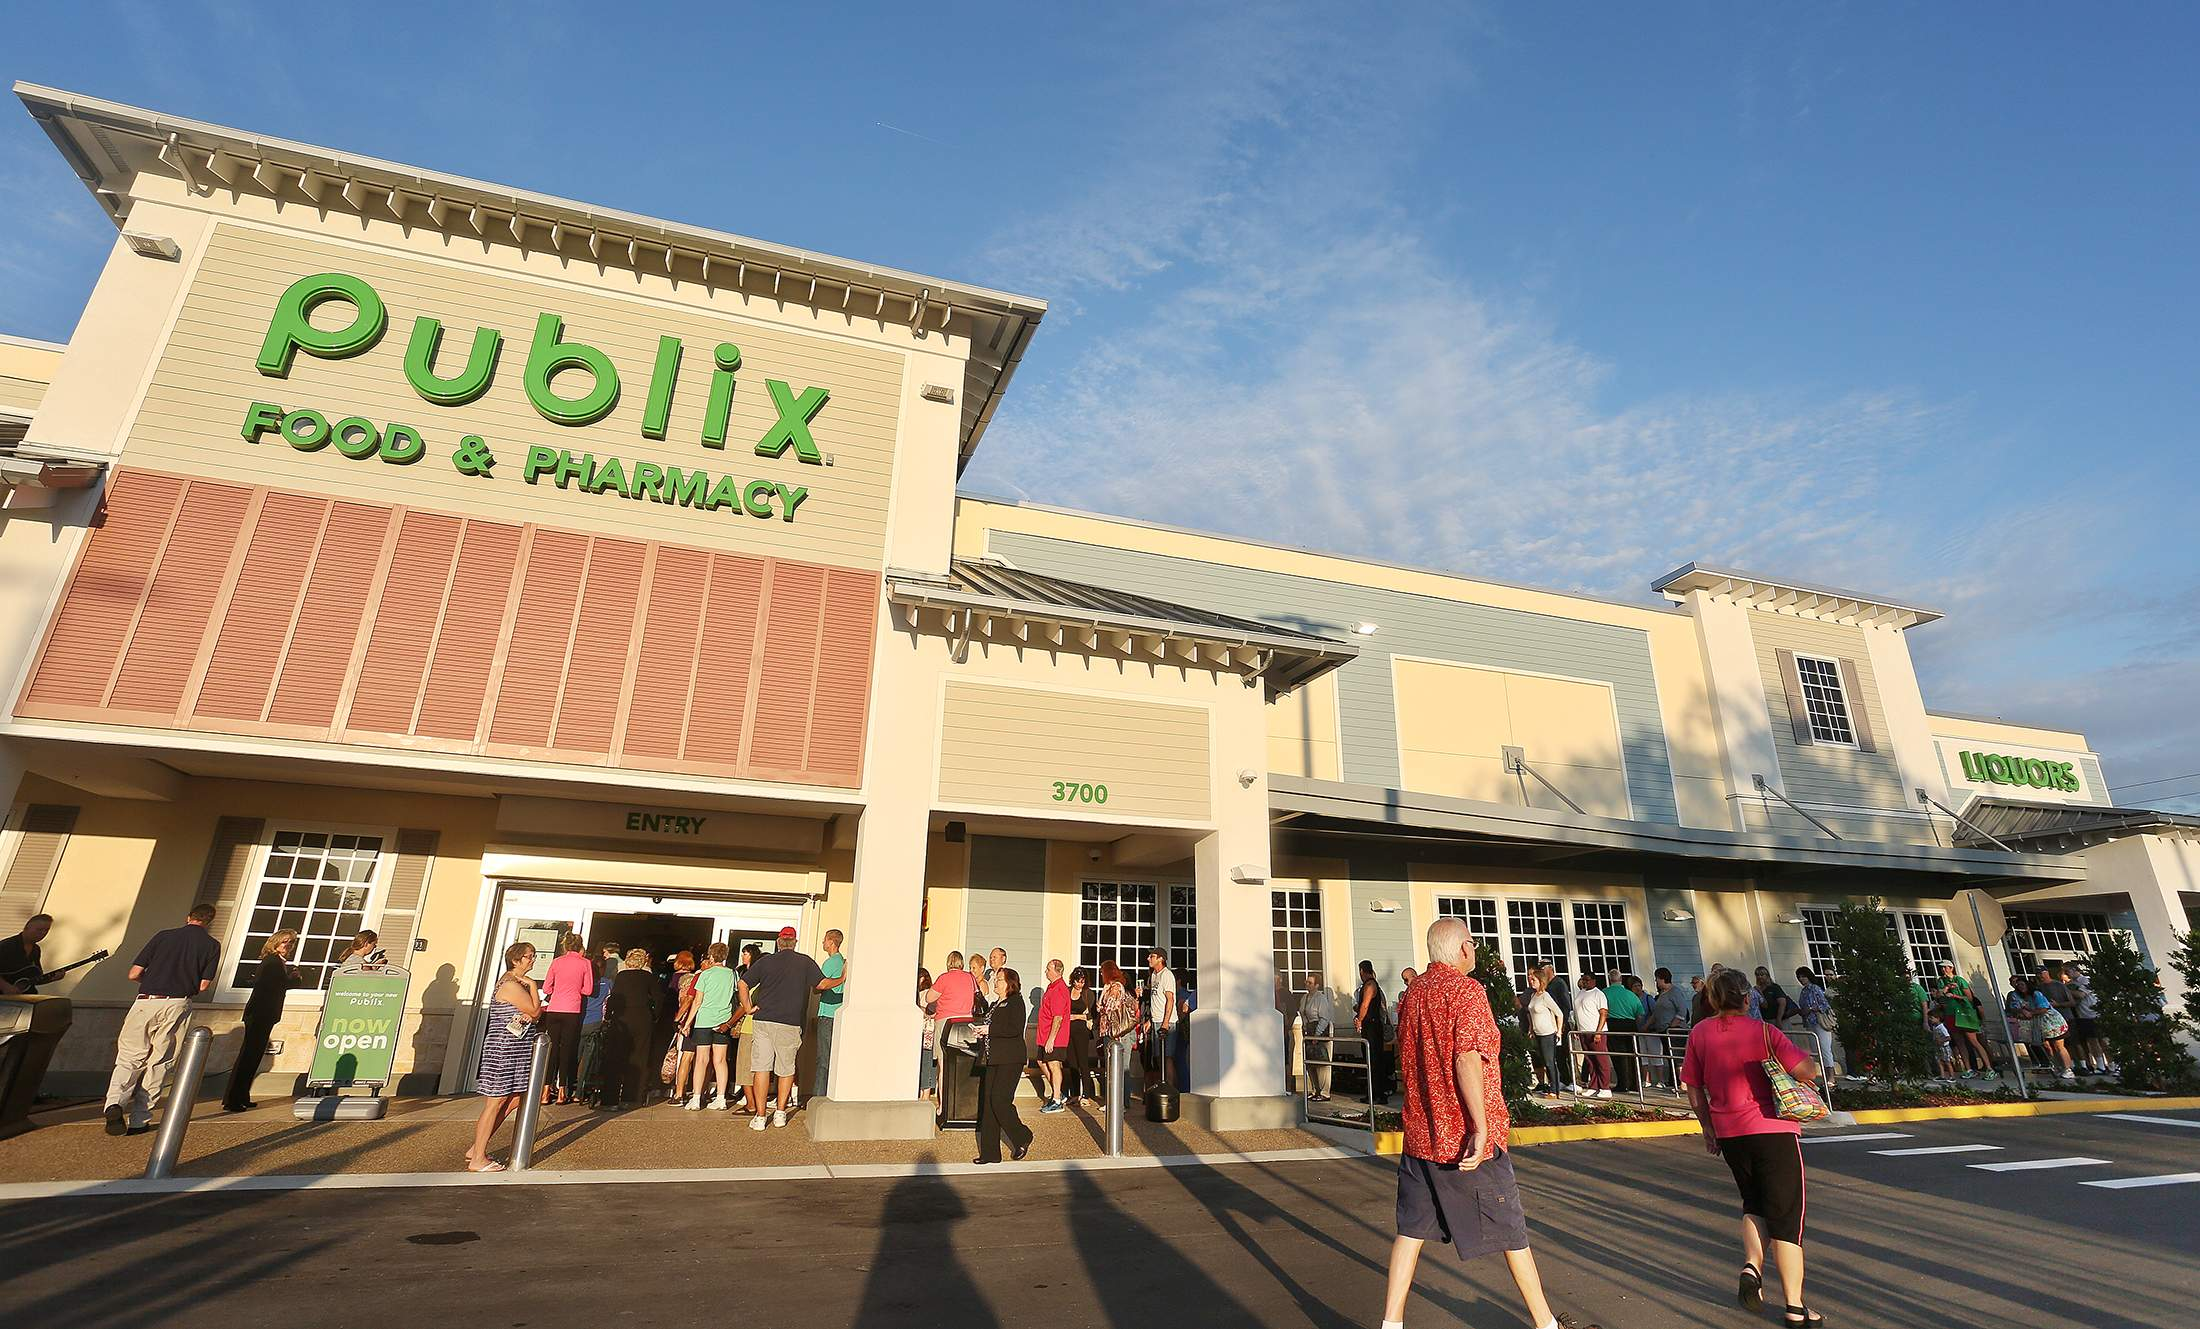 81-year-old woman sues Publix, says she felt threatened by